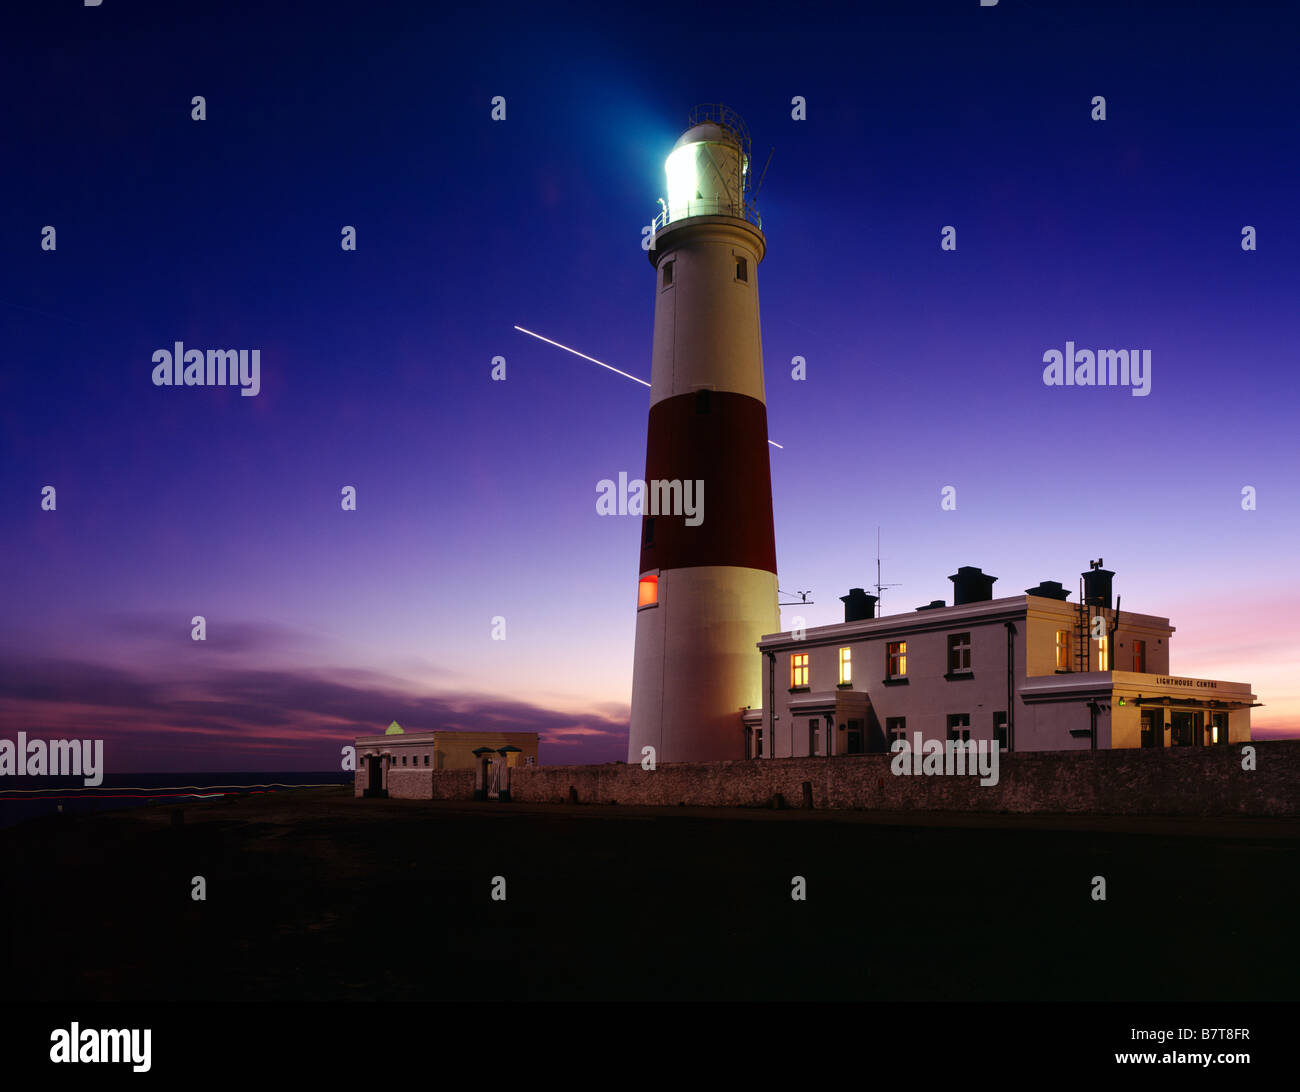 Portland Bill lighthouse at dusk on the Dorset Jurassic Coast England United Kingdom - Stock Image